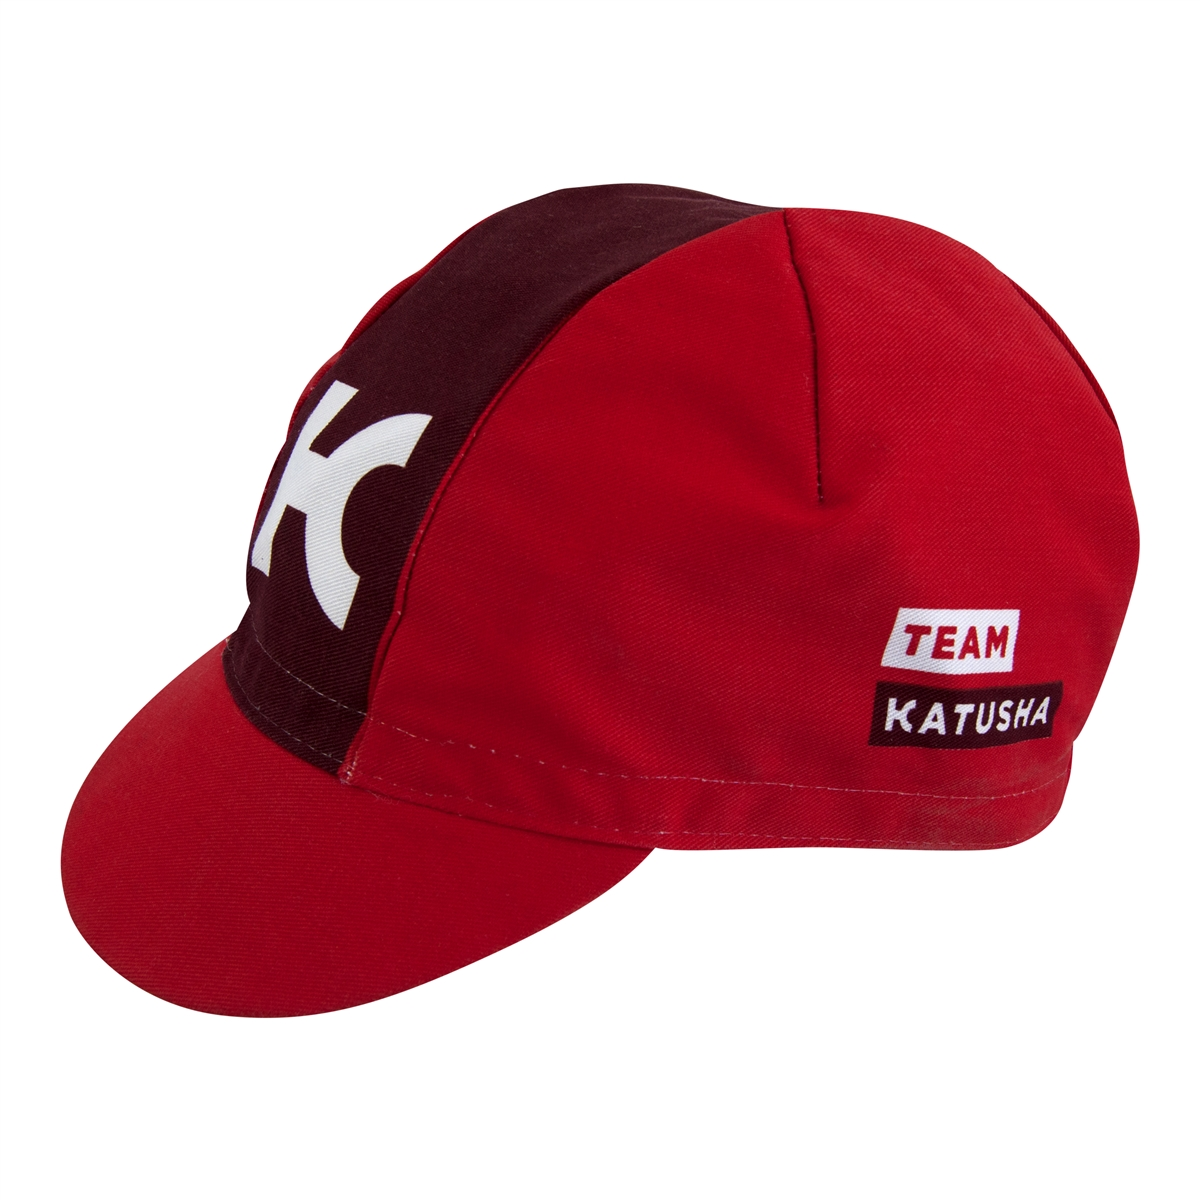 Katusha Cycling Cap OW 2016 Russian Pro Team Made in Italy